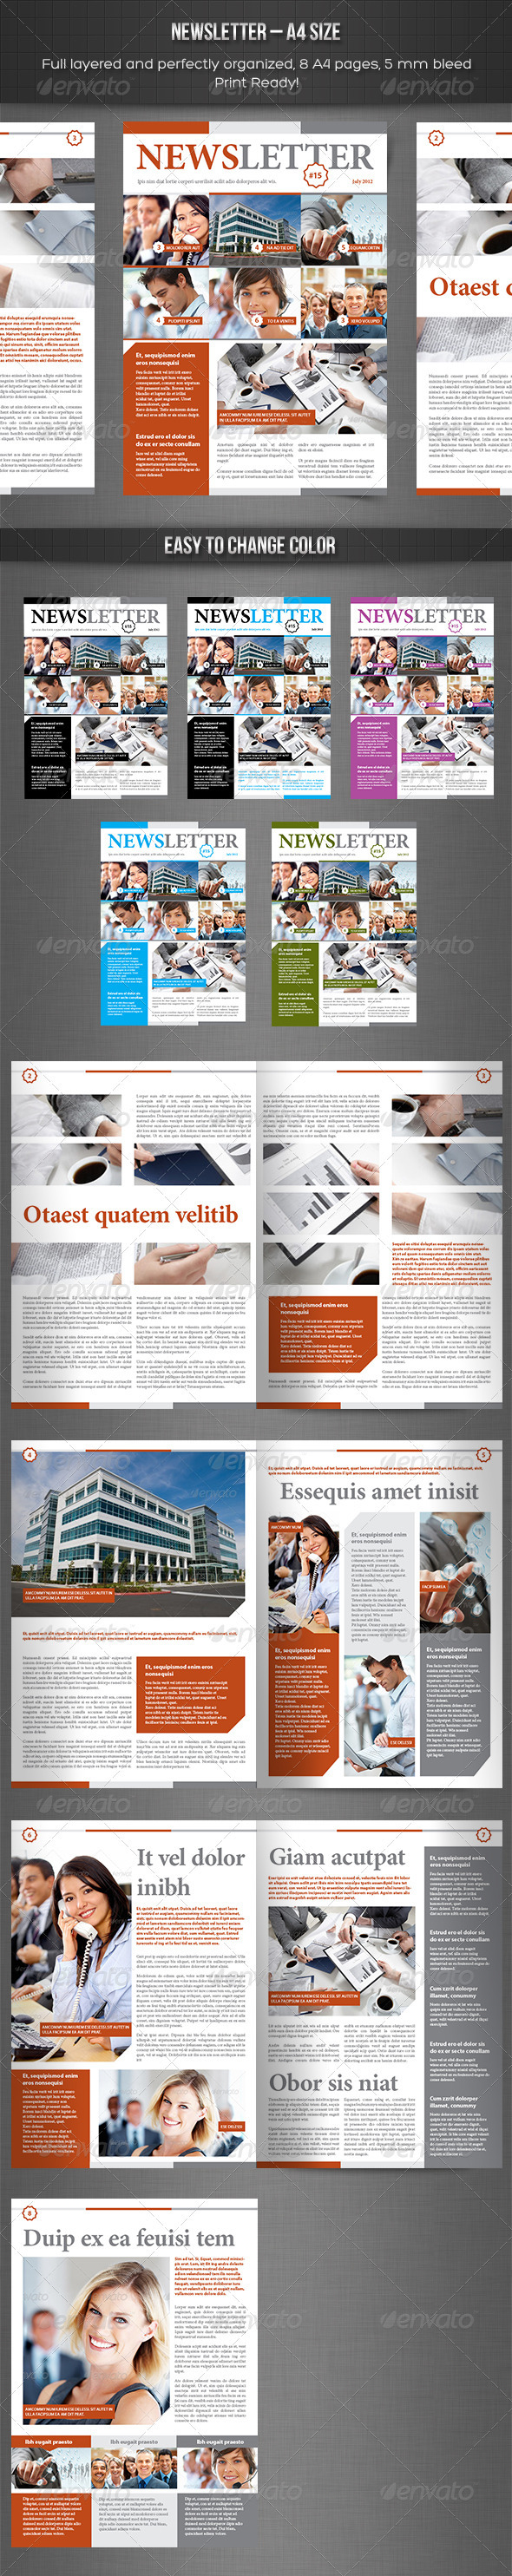 GraphicRiver Newsletter vol 8 Indesign Template 3915606